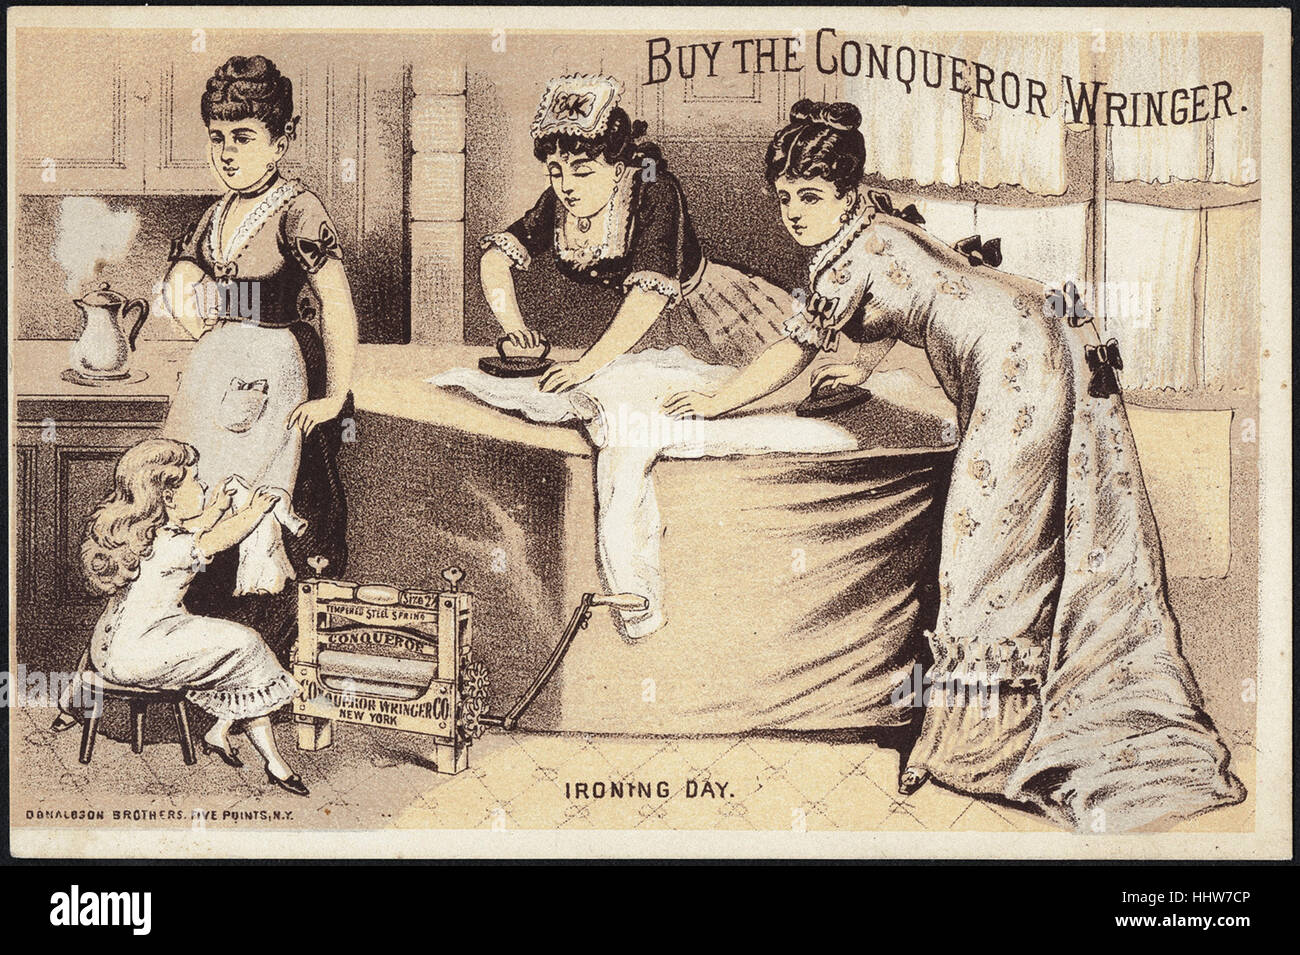 Buy the Conqueror Wringer. Ironing day. [front]  - Laundry Trade Cards - Stock Image